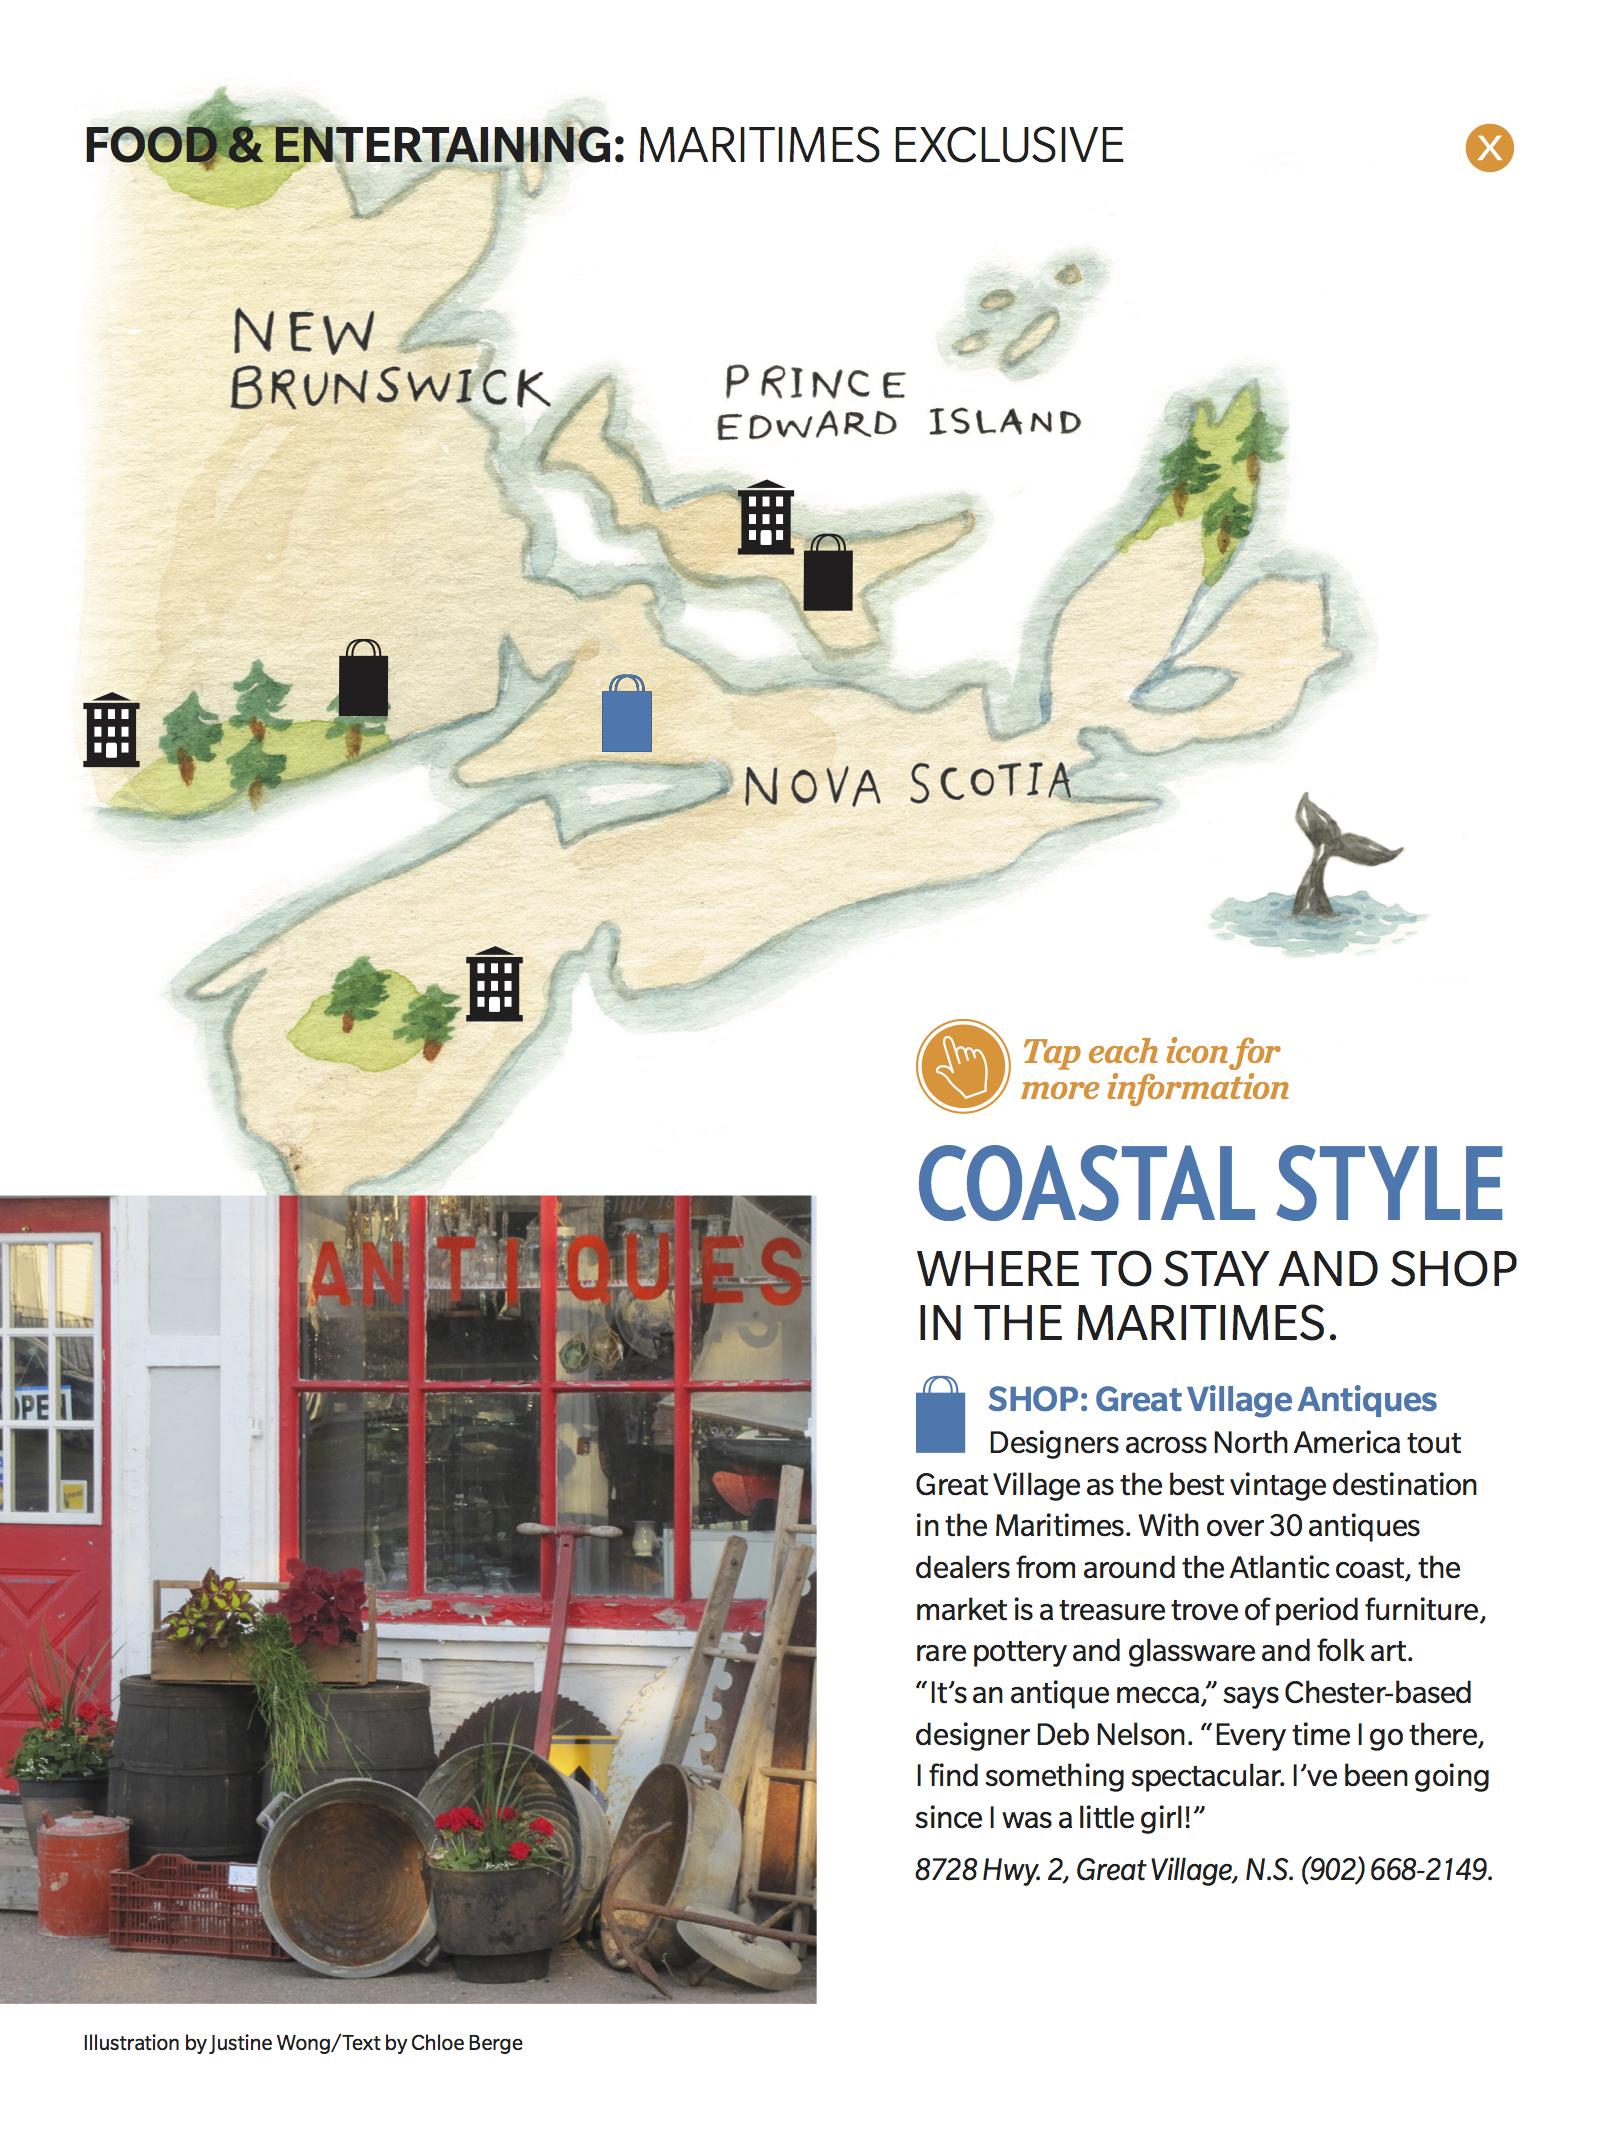 East Coast Travel Guide_House & Home Magazine iPad Edition_July 2014.jpg